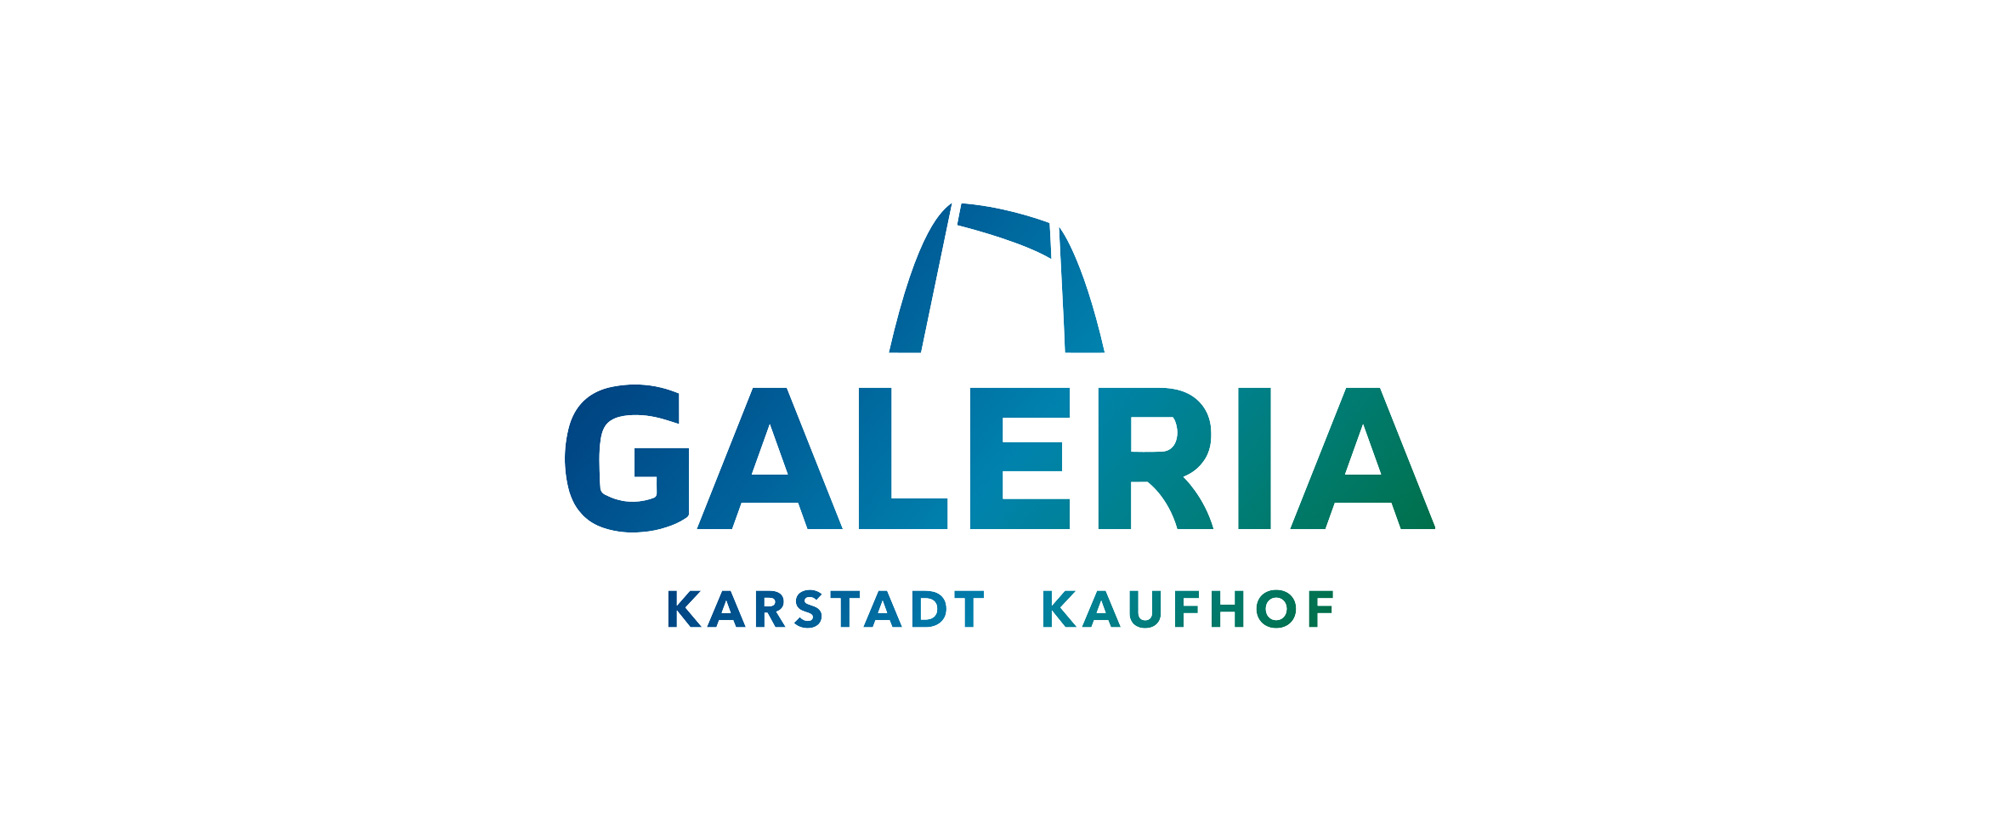 New Name and Logo for Galeria Karstadt Kaufhof